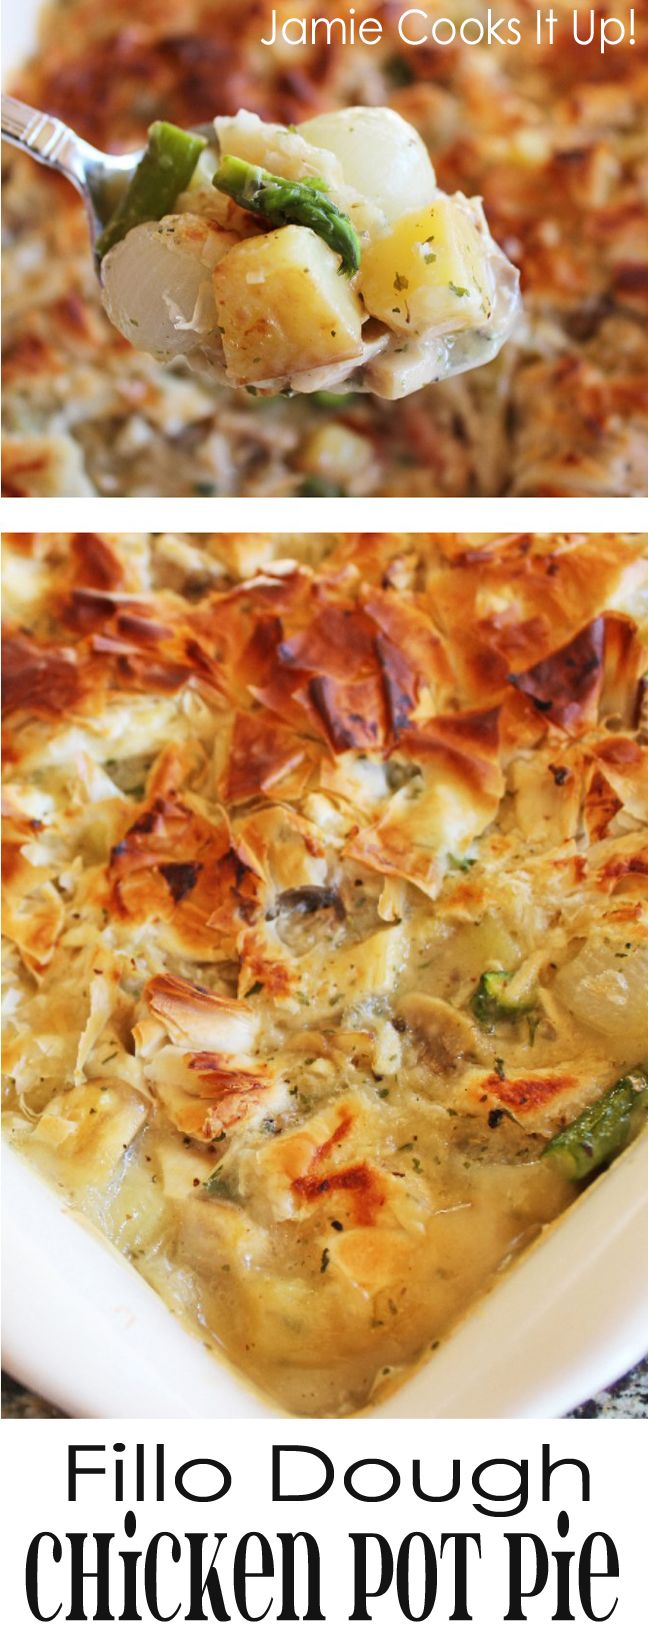 Jamie Cooks It Up – Family Favorite Food and Recipes |fillo dough chicken pot pie